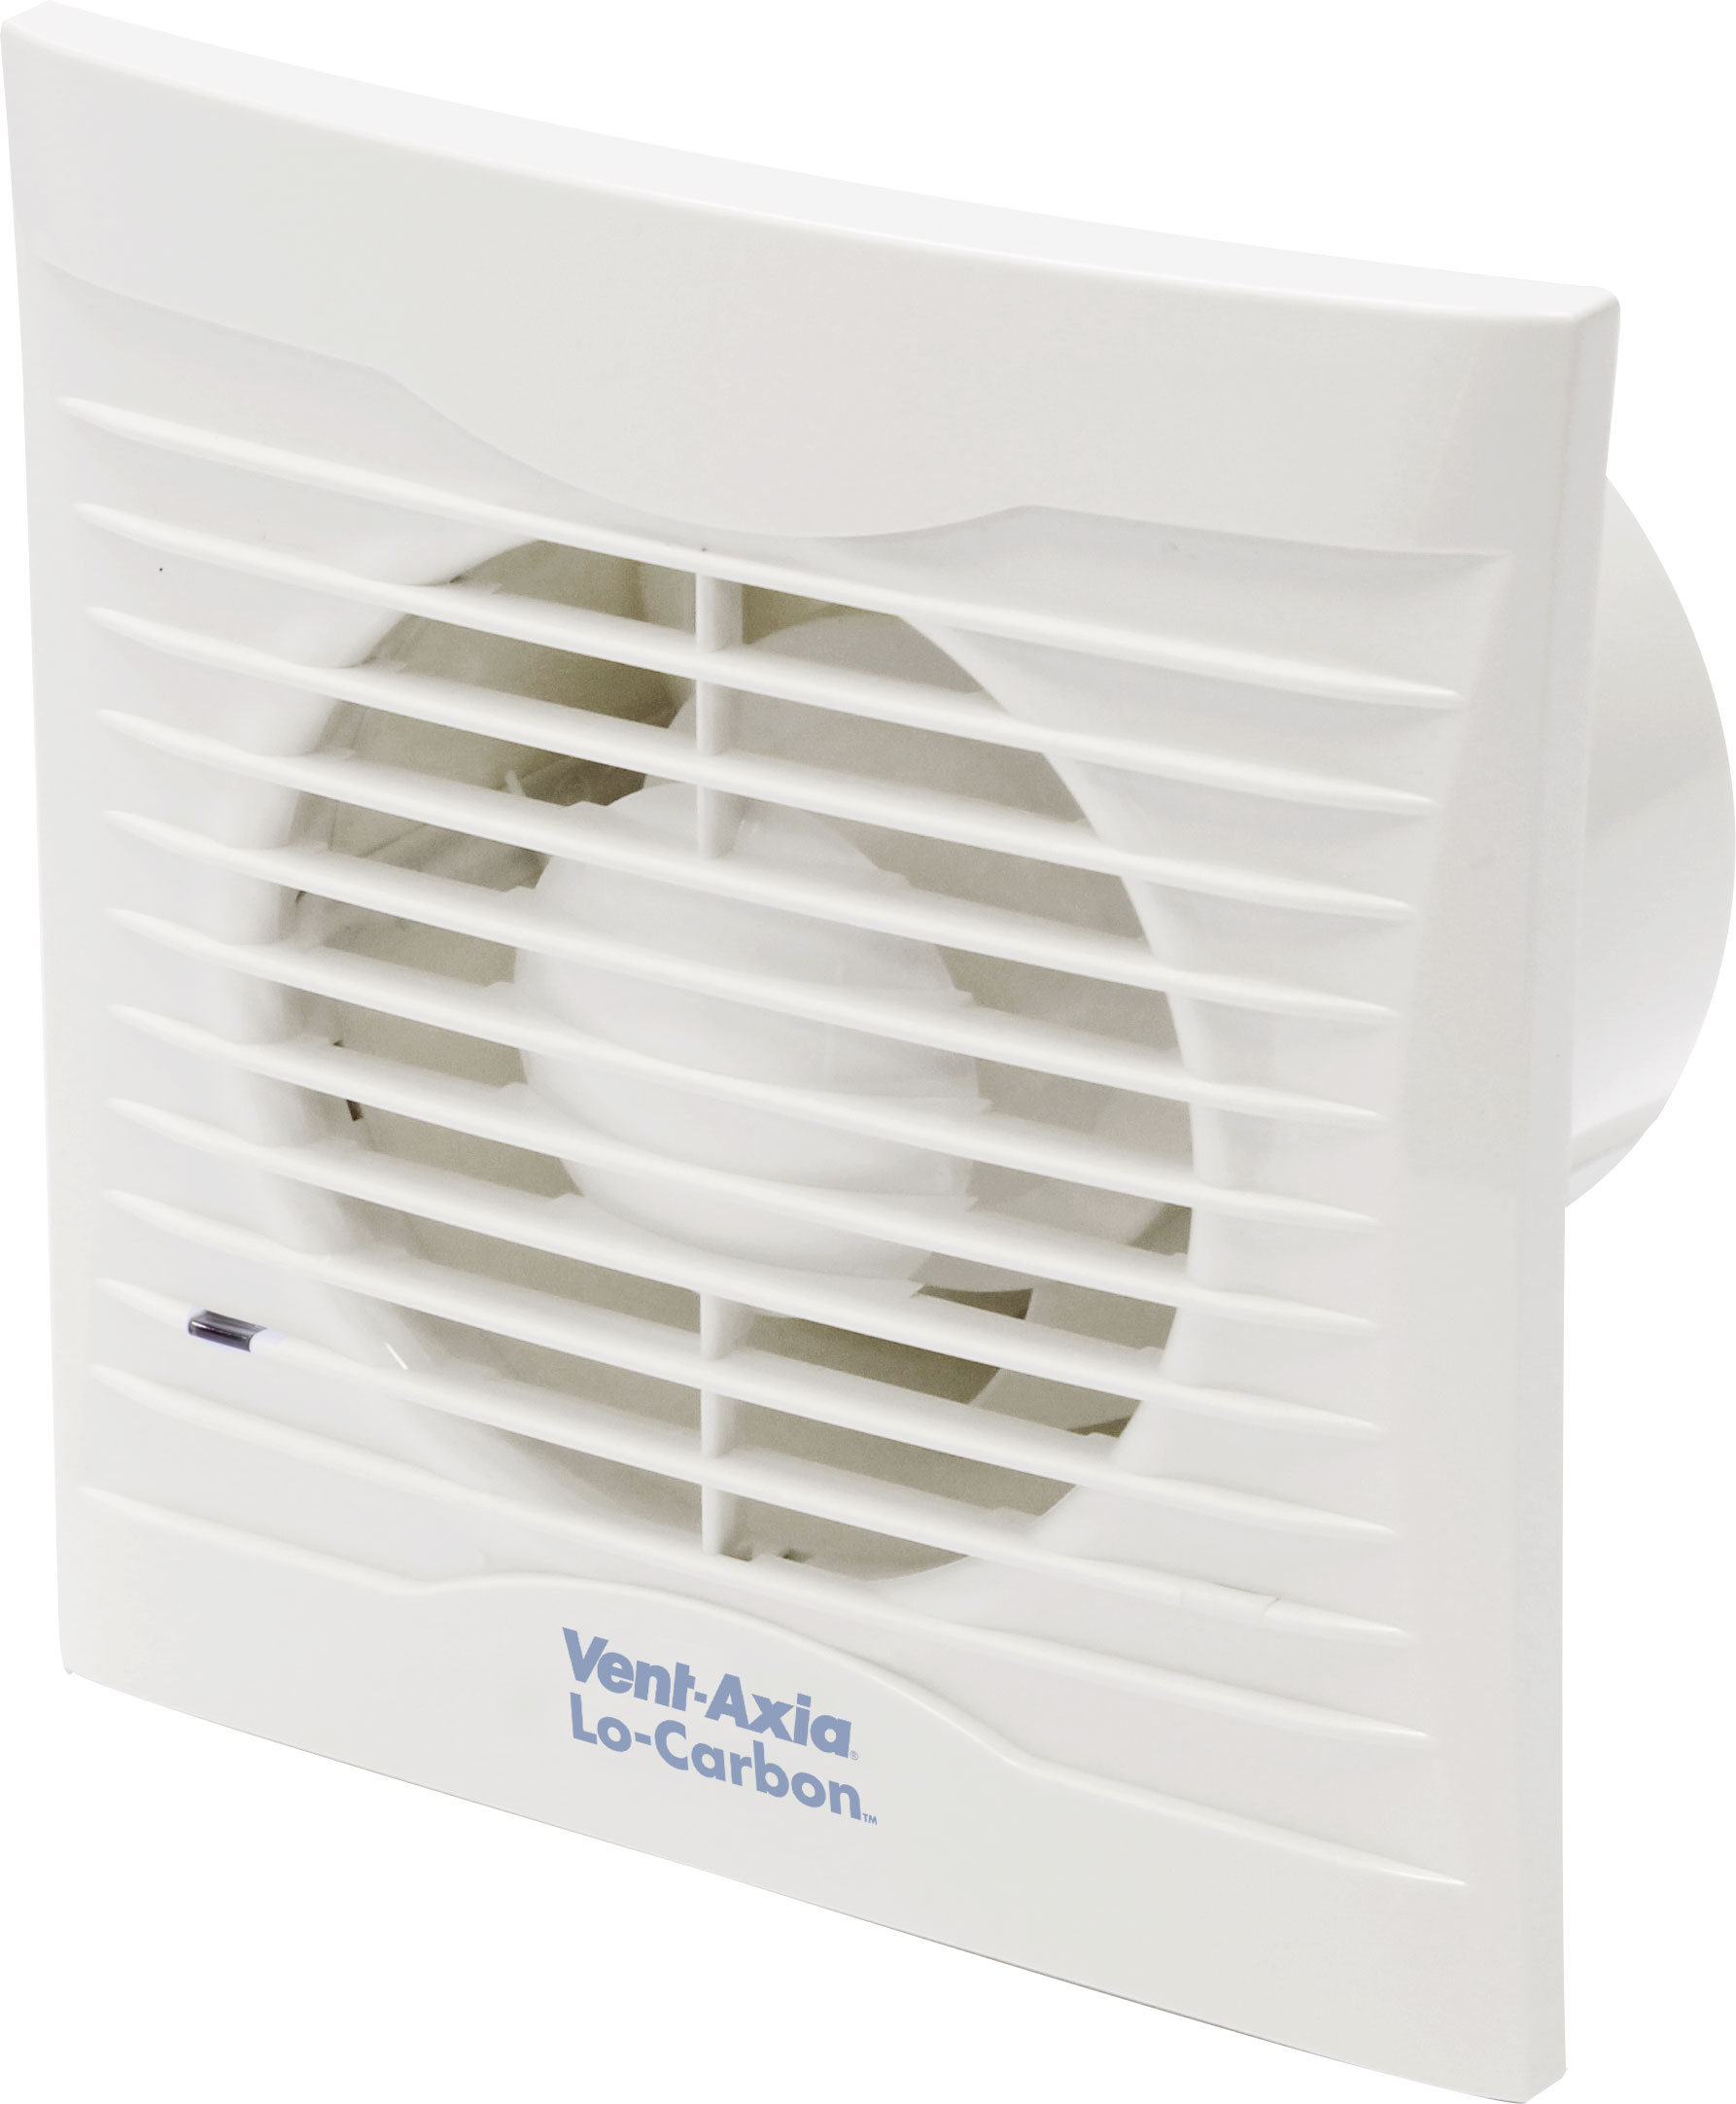 budget decor ideas extractor to consider fan choosing things my bathroom a on while